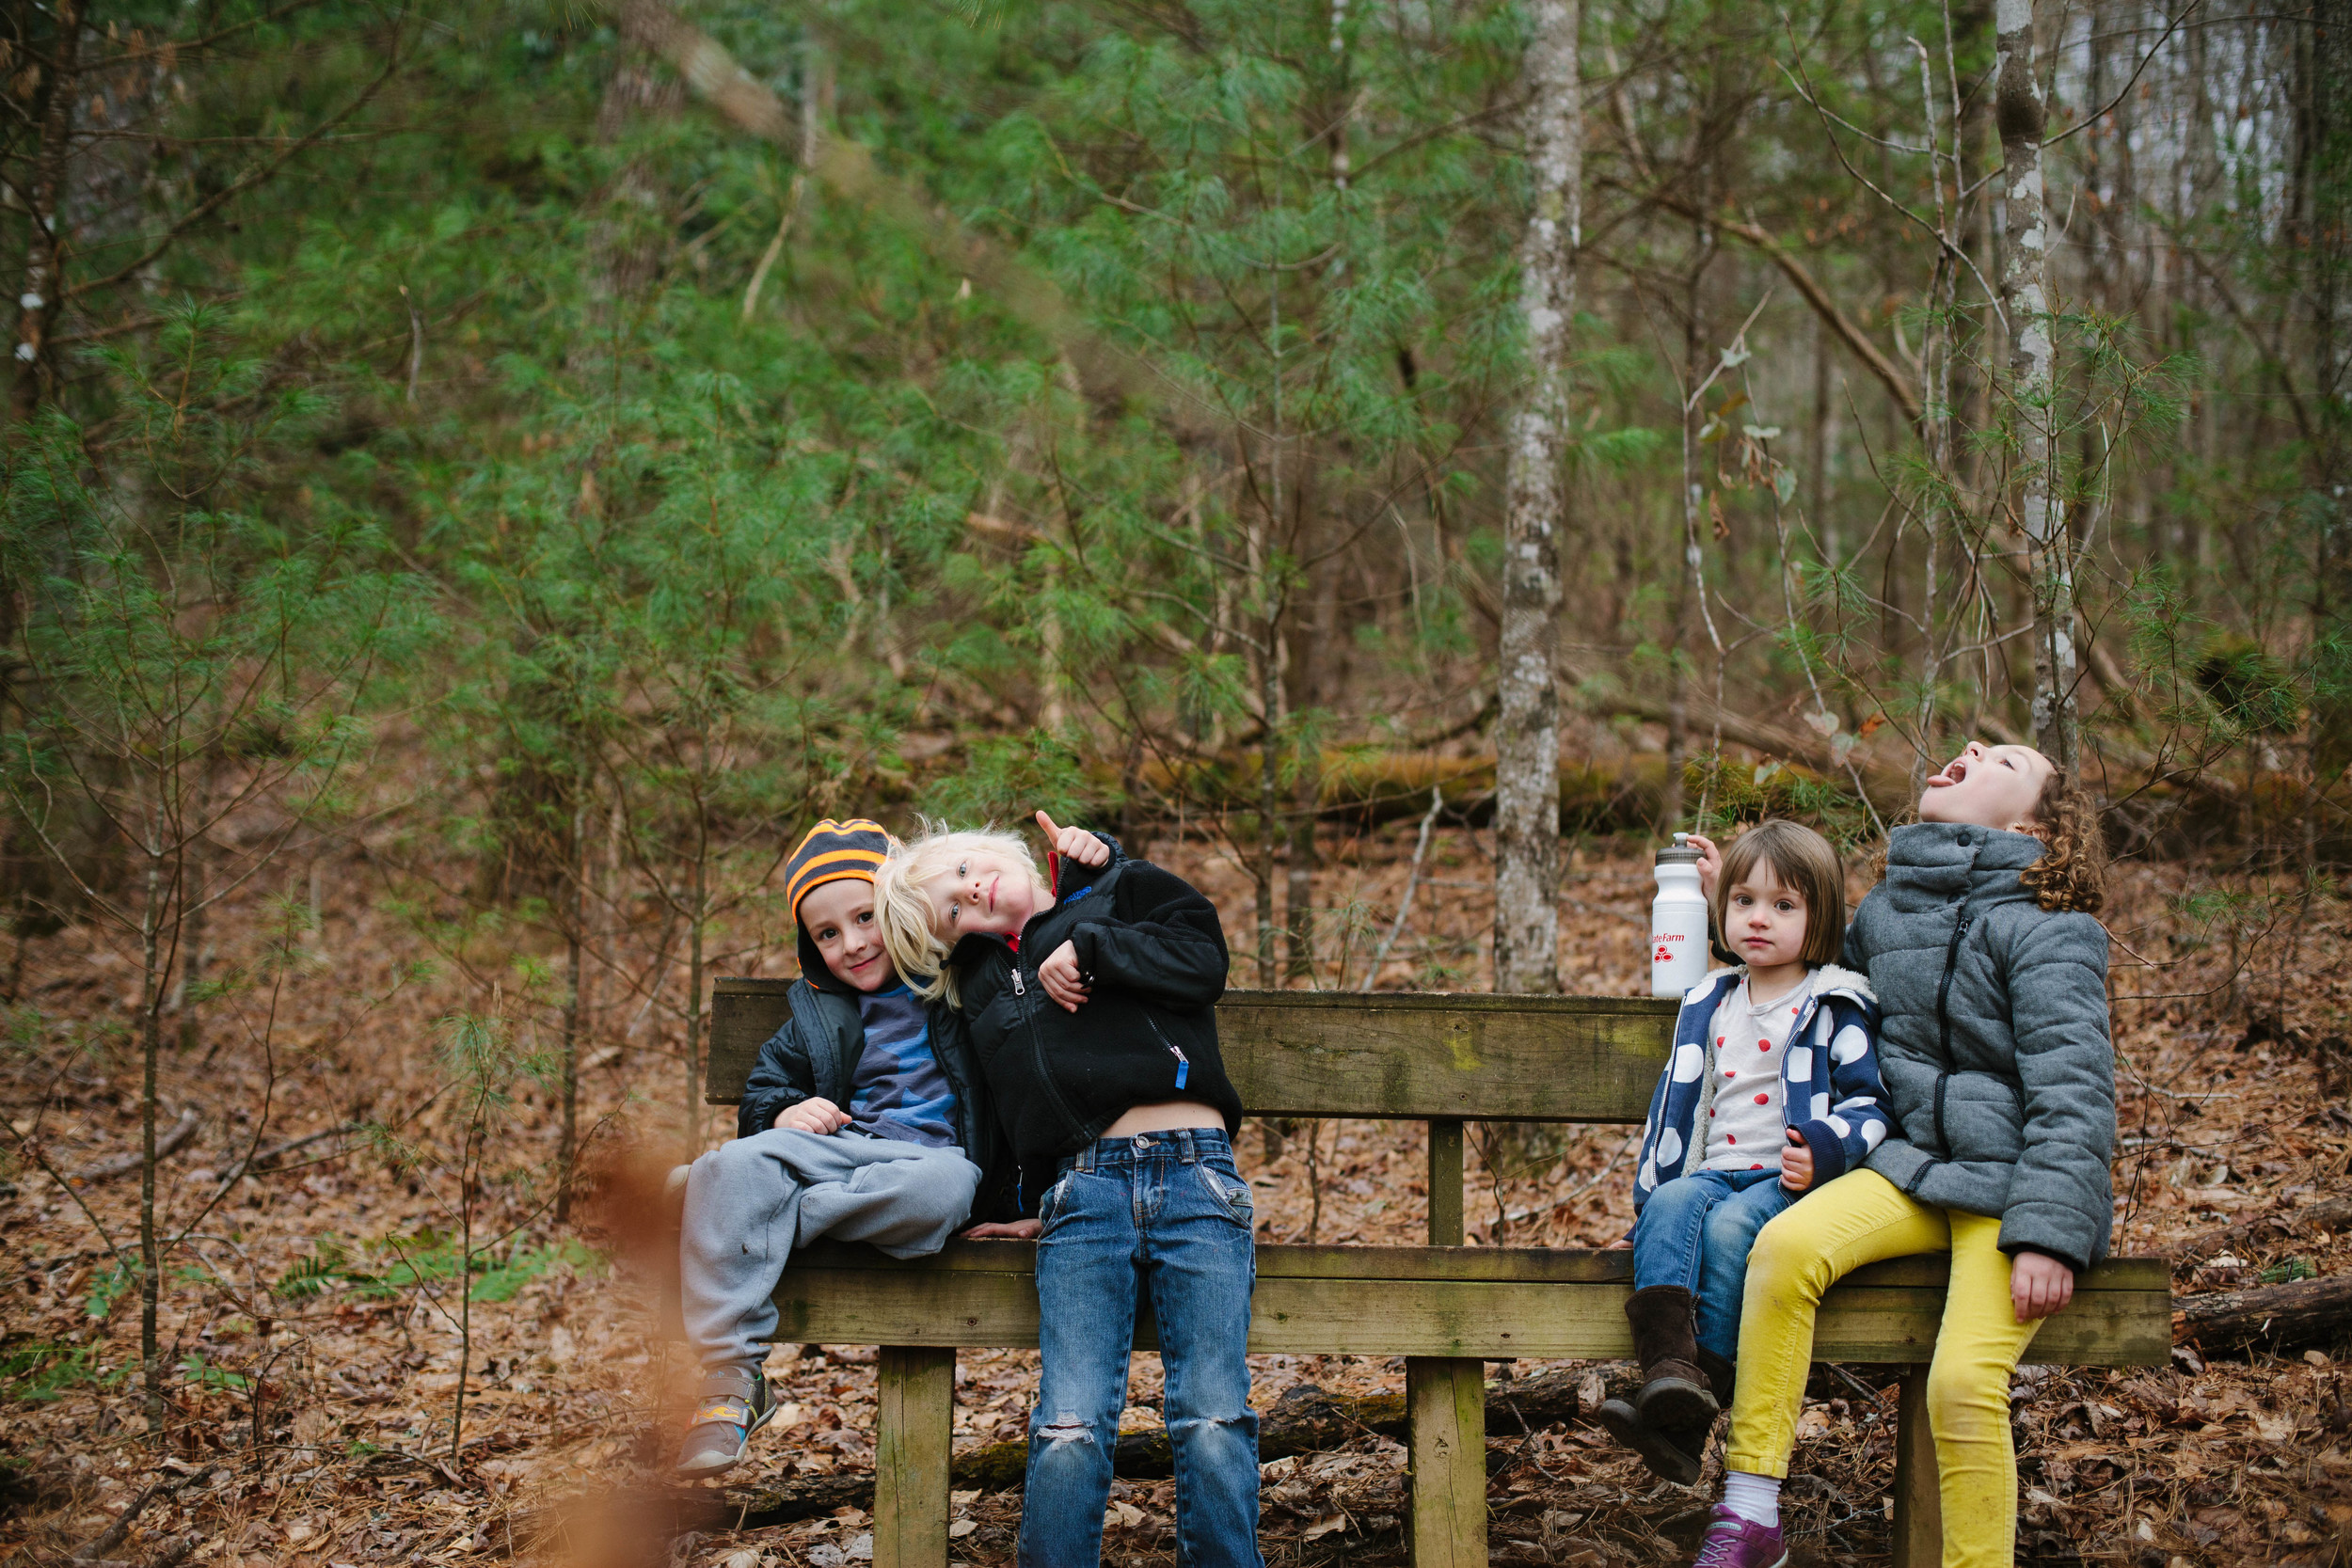 Image of children resting on a bench in a forest